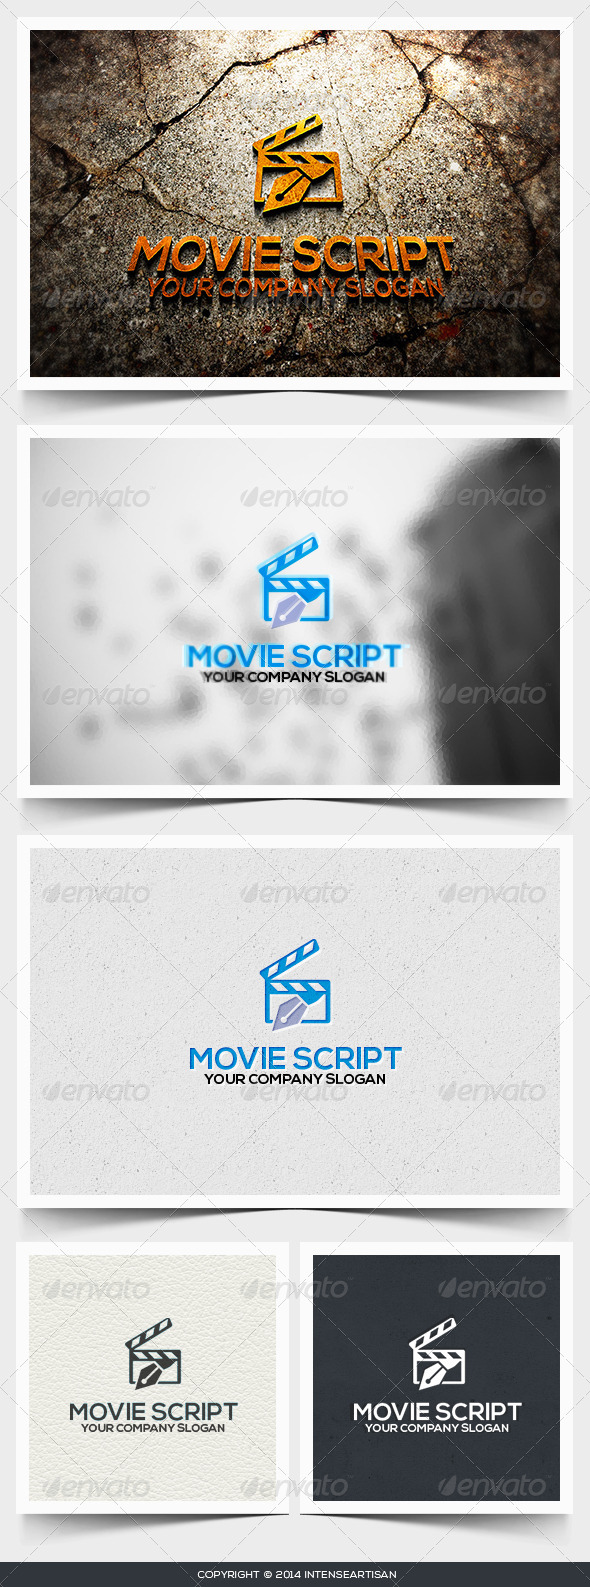 Movie Script Logo Template - Objects Logo Templates